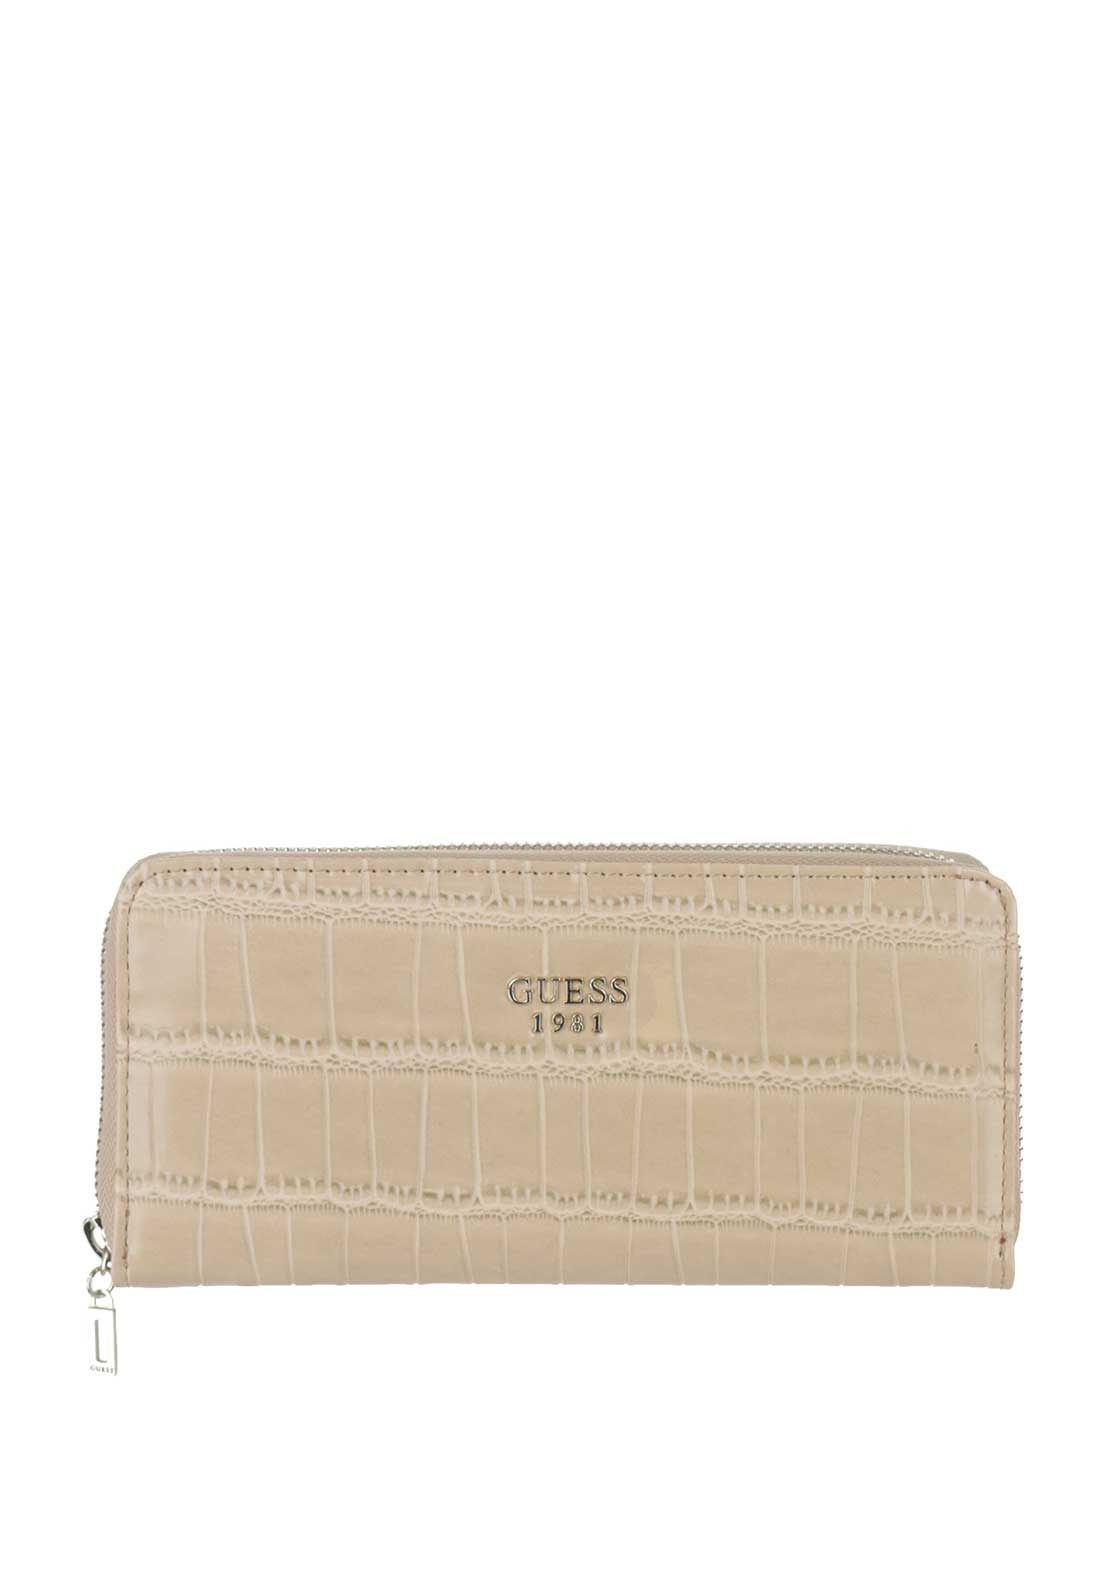 Guess Cate SLG Croc Print Purse, Nut